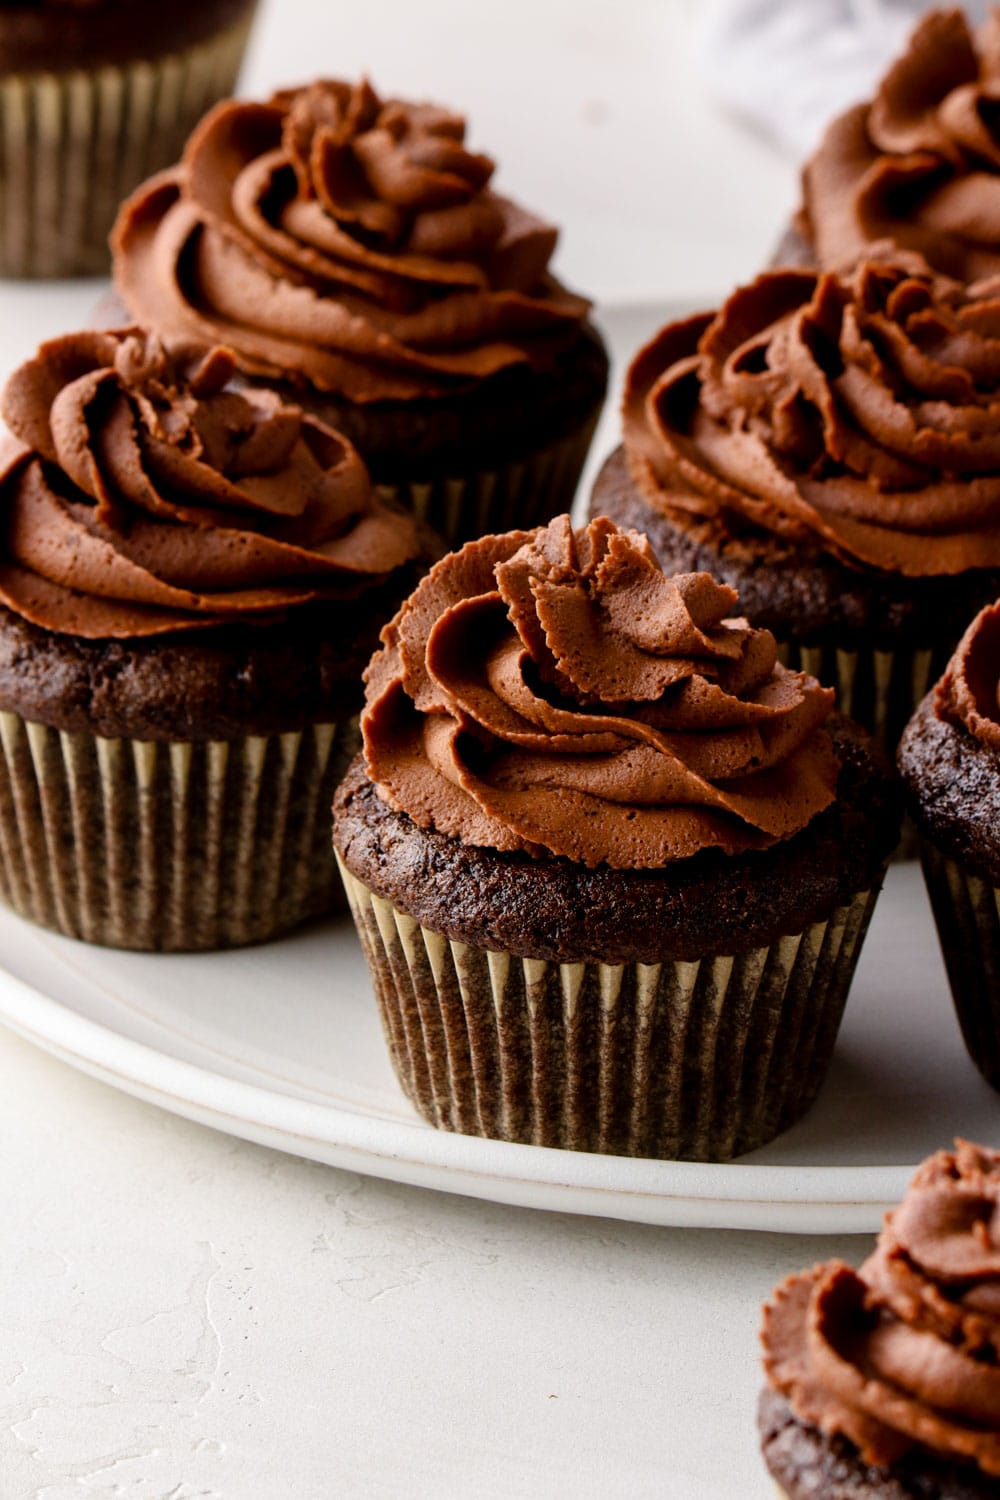 Frosted gluten free chocolate cupcakes on a plate.